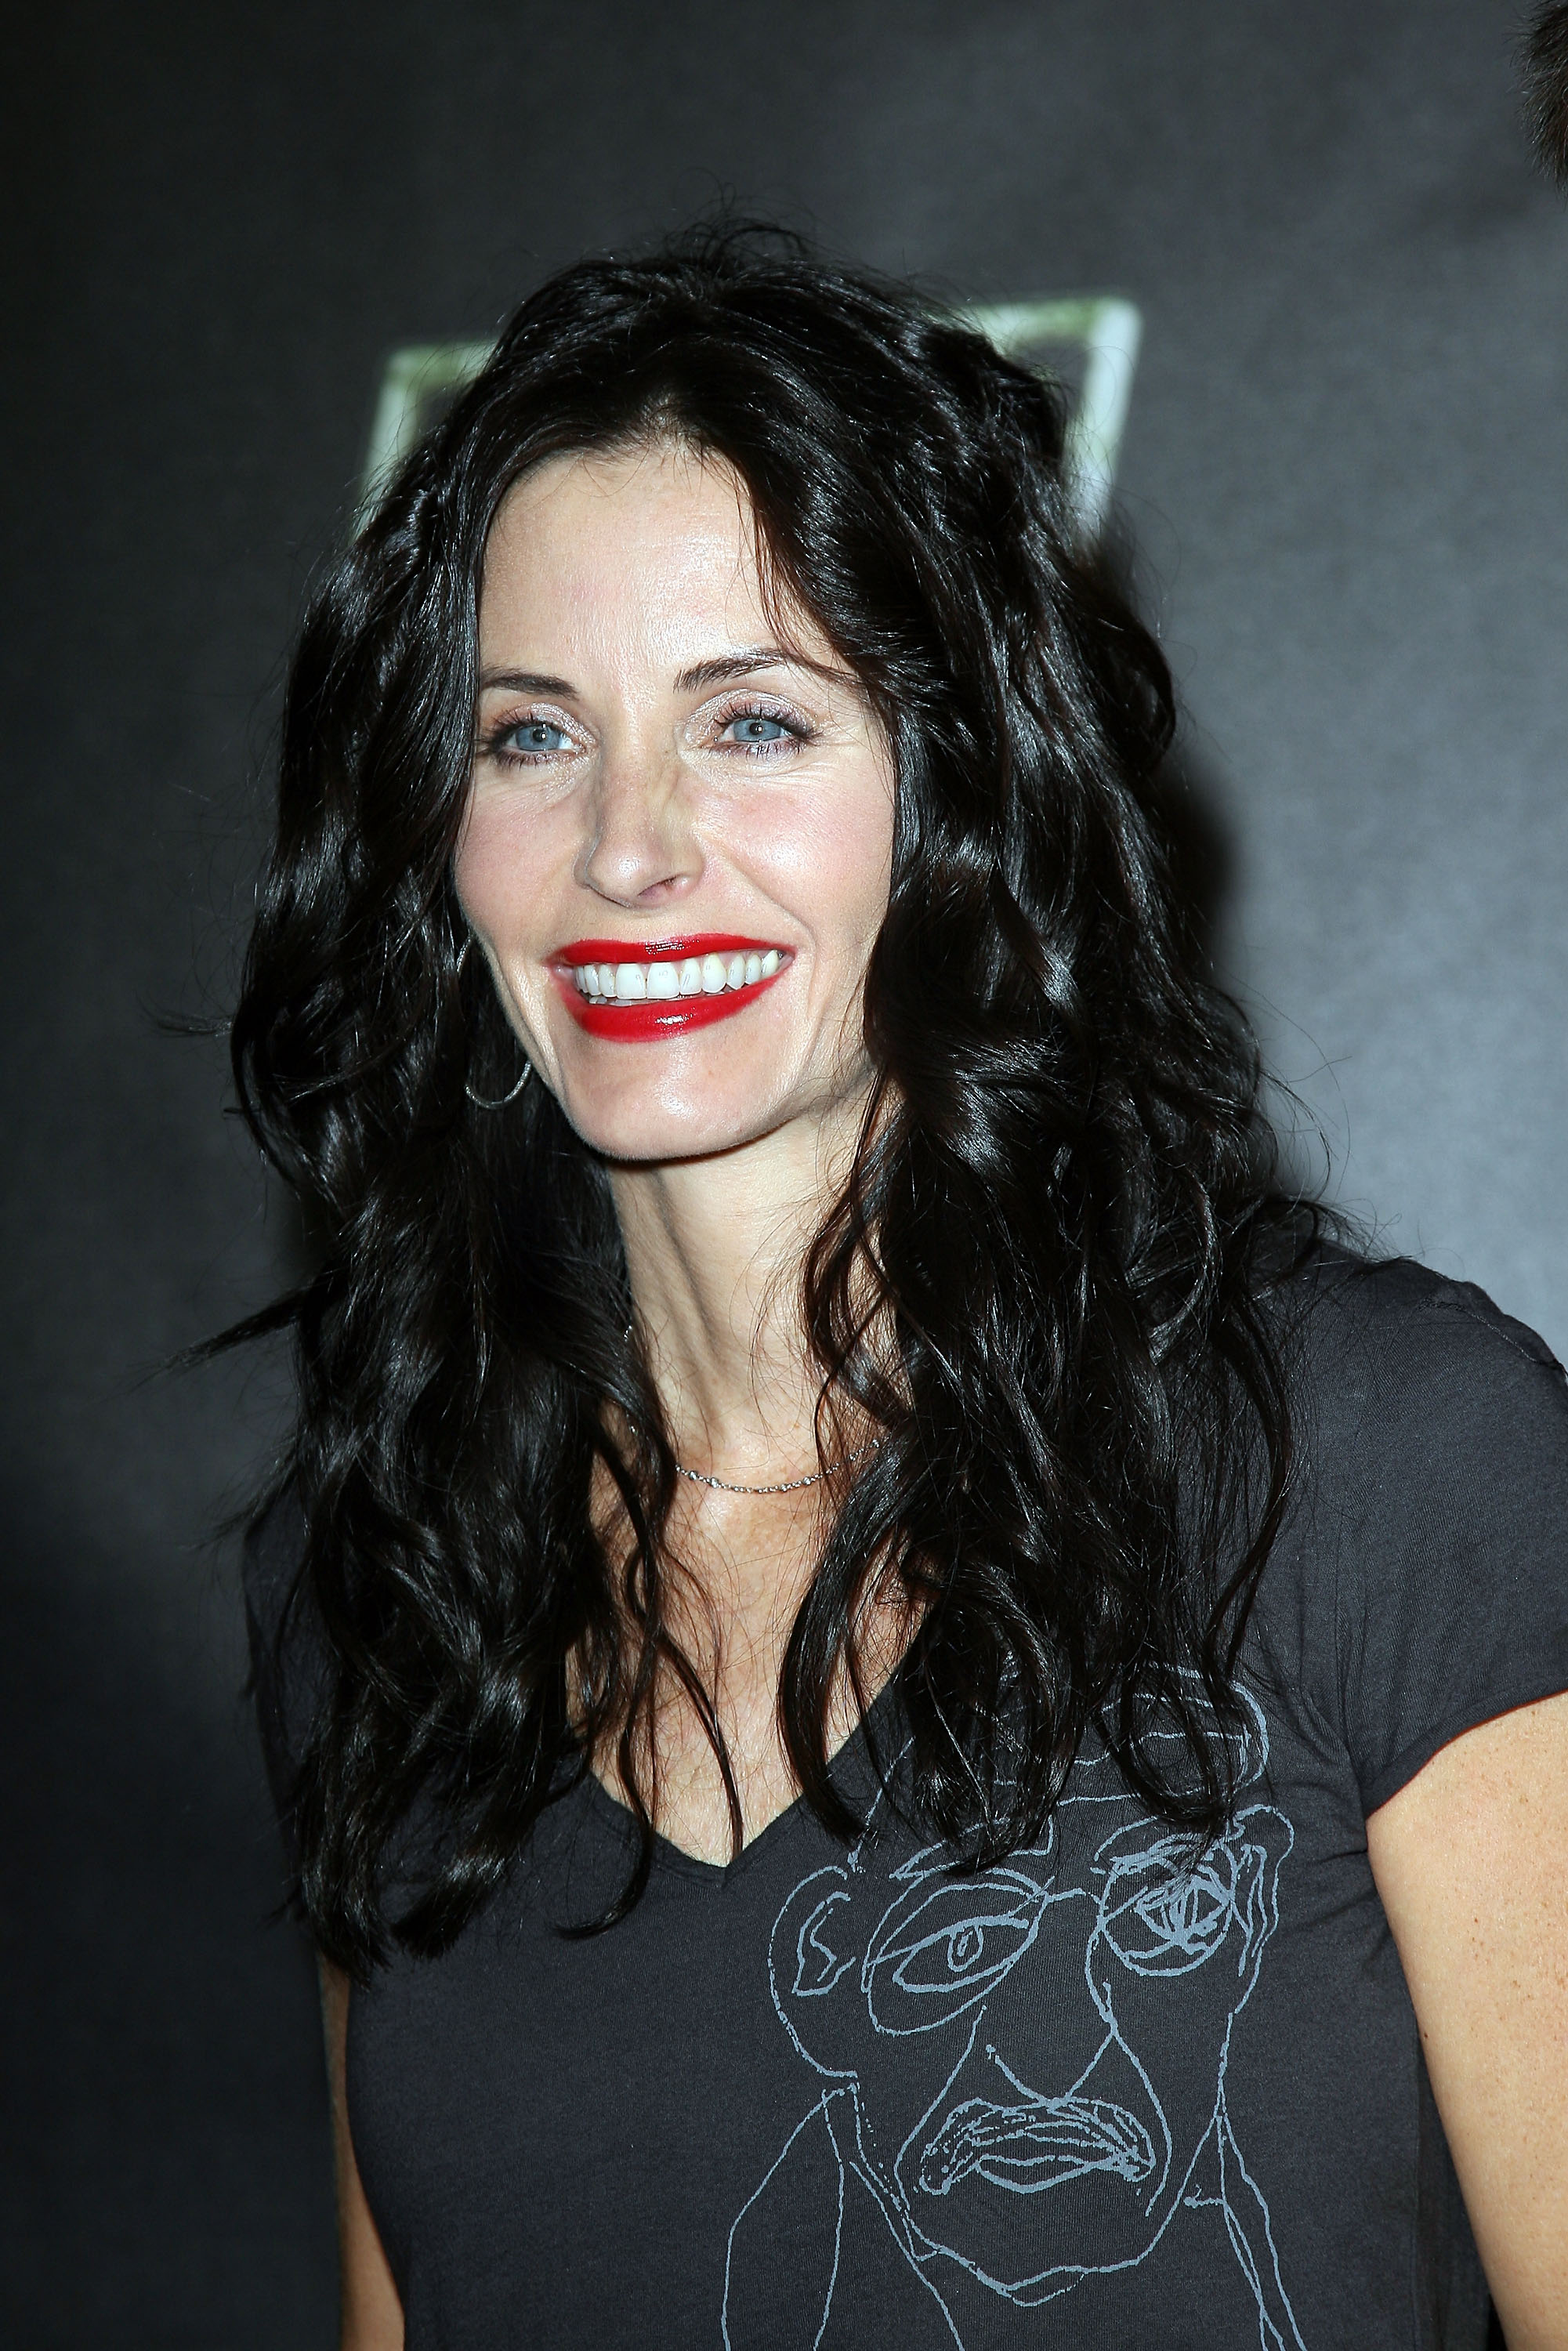 55166_Celebutopia-Courteney_Cox-Launch_Party_for_Fallout_3_videogame-09_122_1026lo.jpg